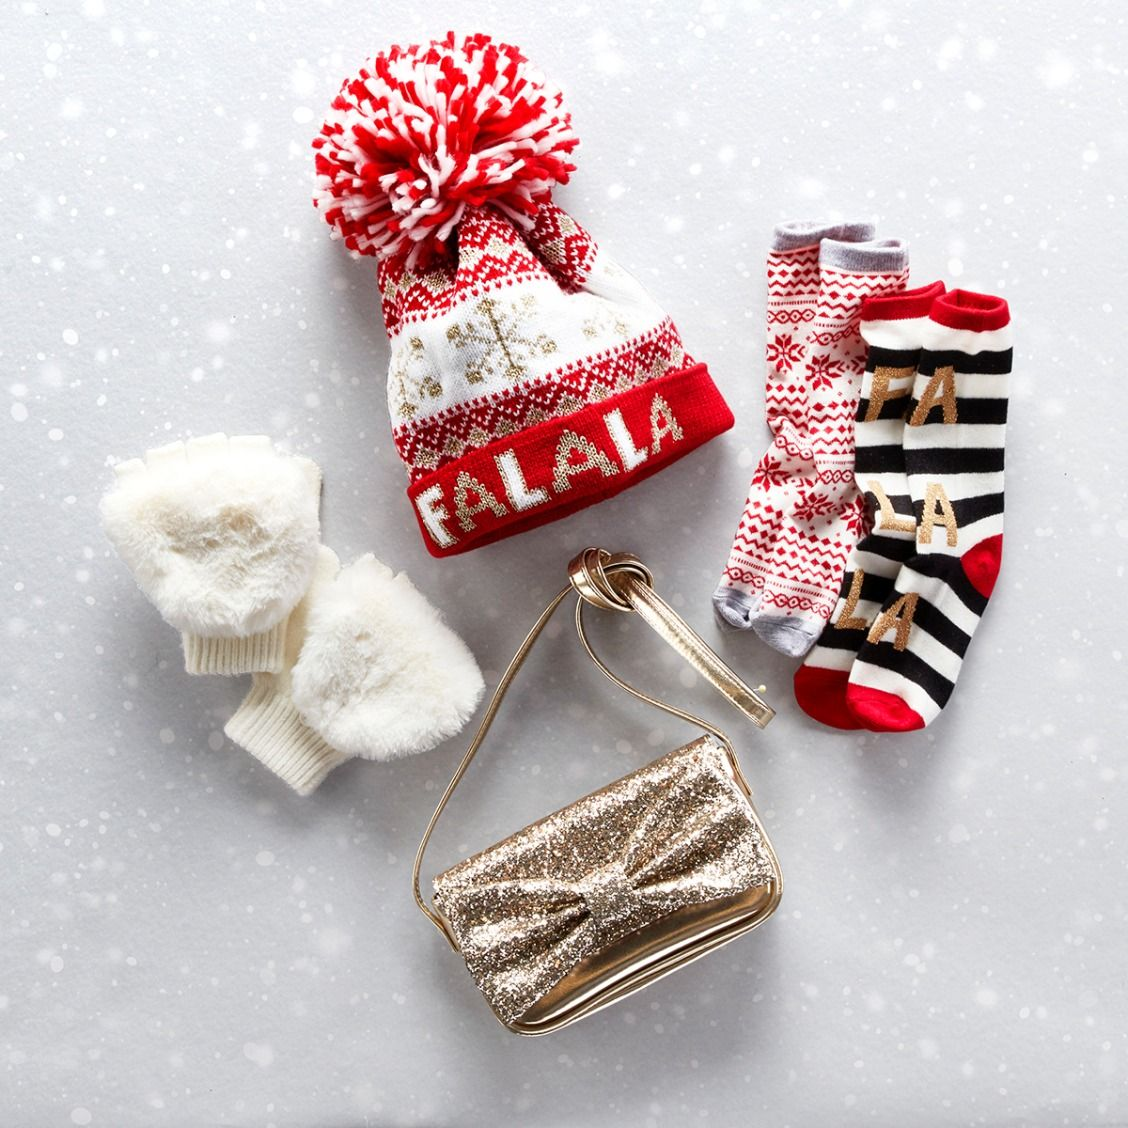 Girls' fashion | Kids' clothes | Gifting ideas | Pom pom beanie | Holiday socks | Mittens | Glitter purse | The Children's Place